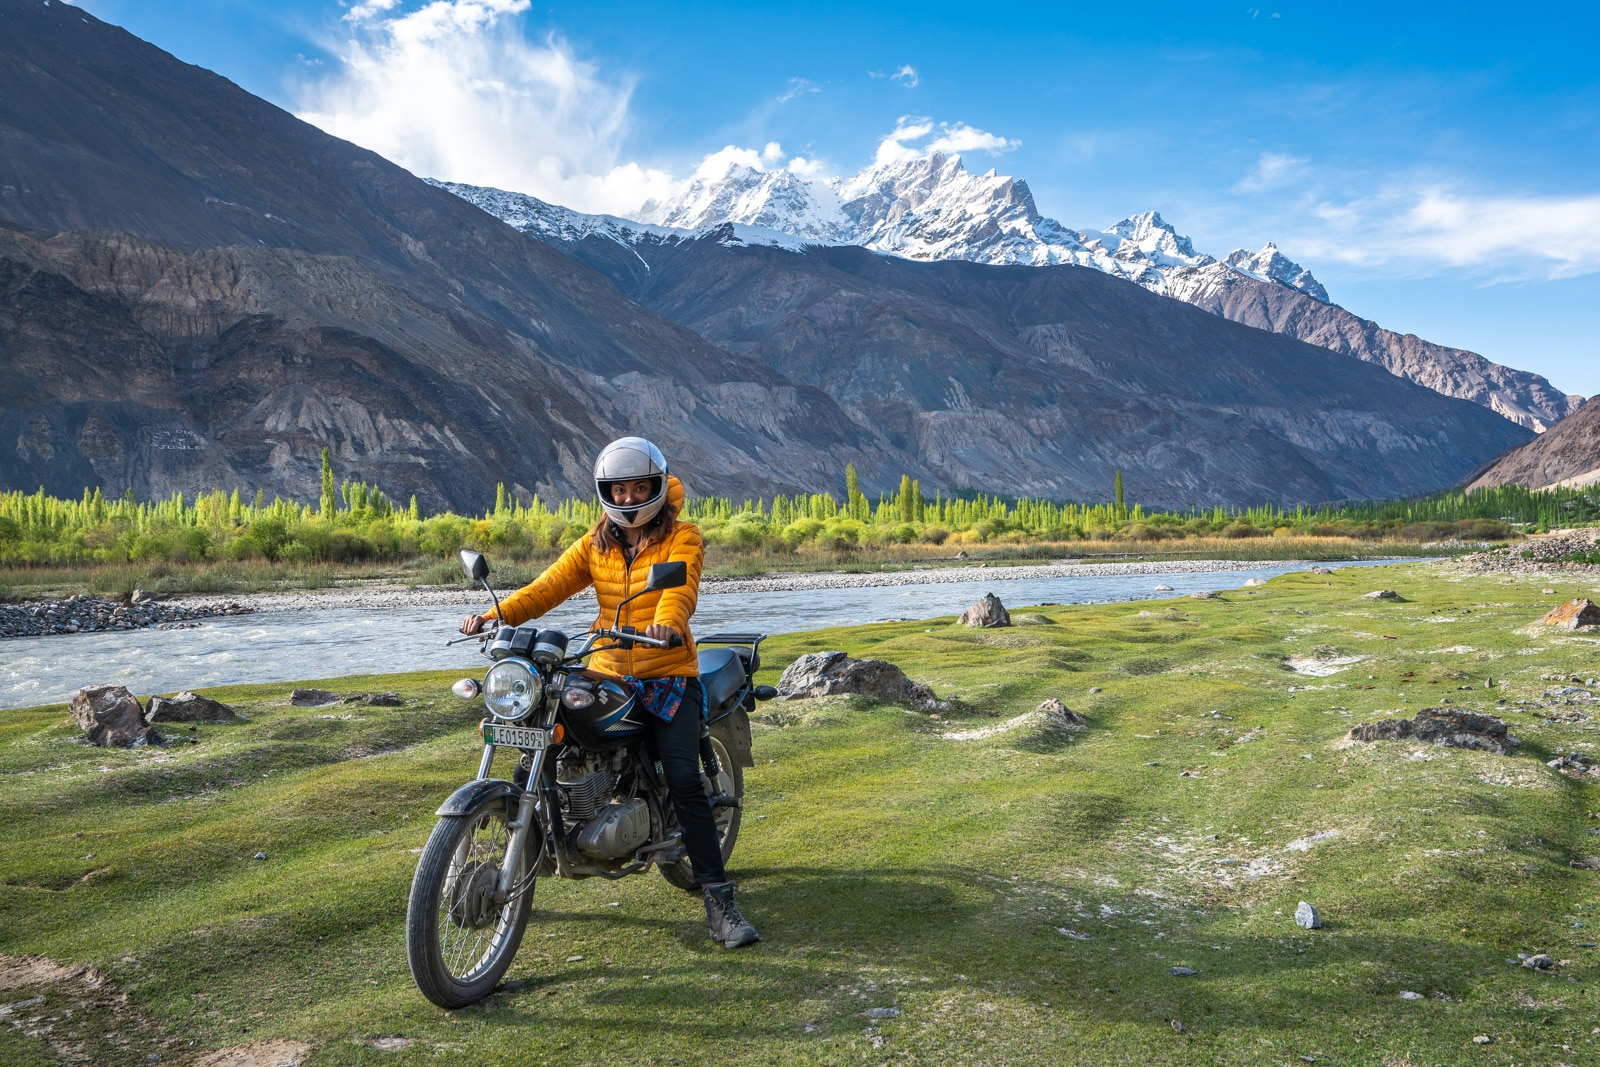 Motorbiking in Yasin Valley, Ghizer, Pakistan